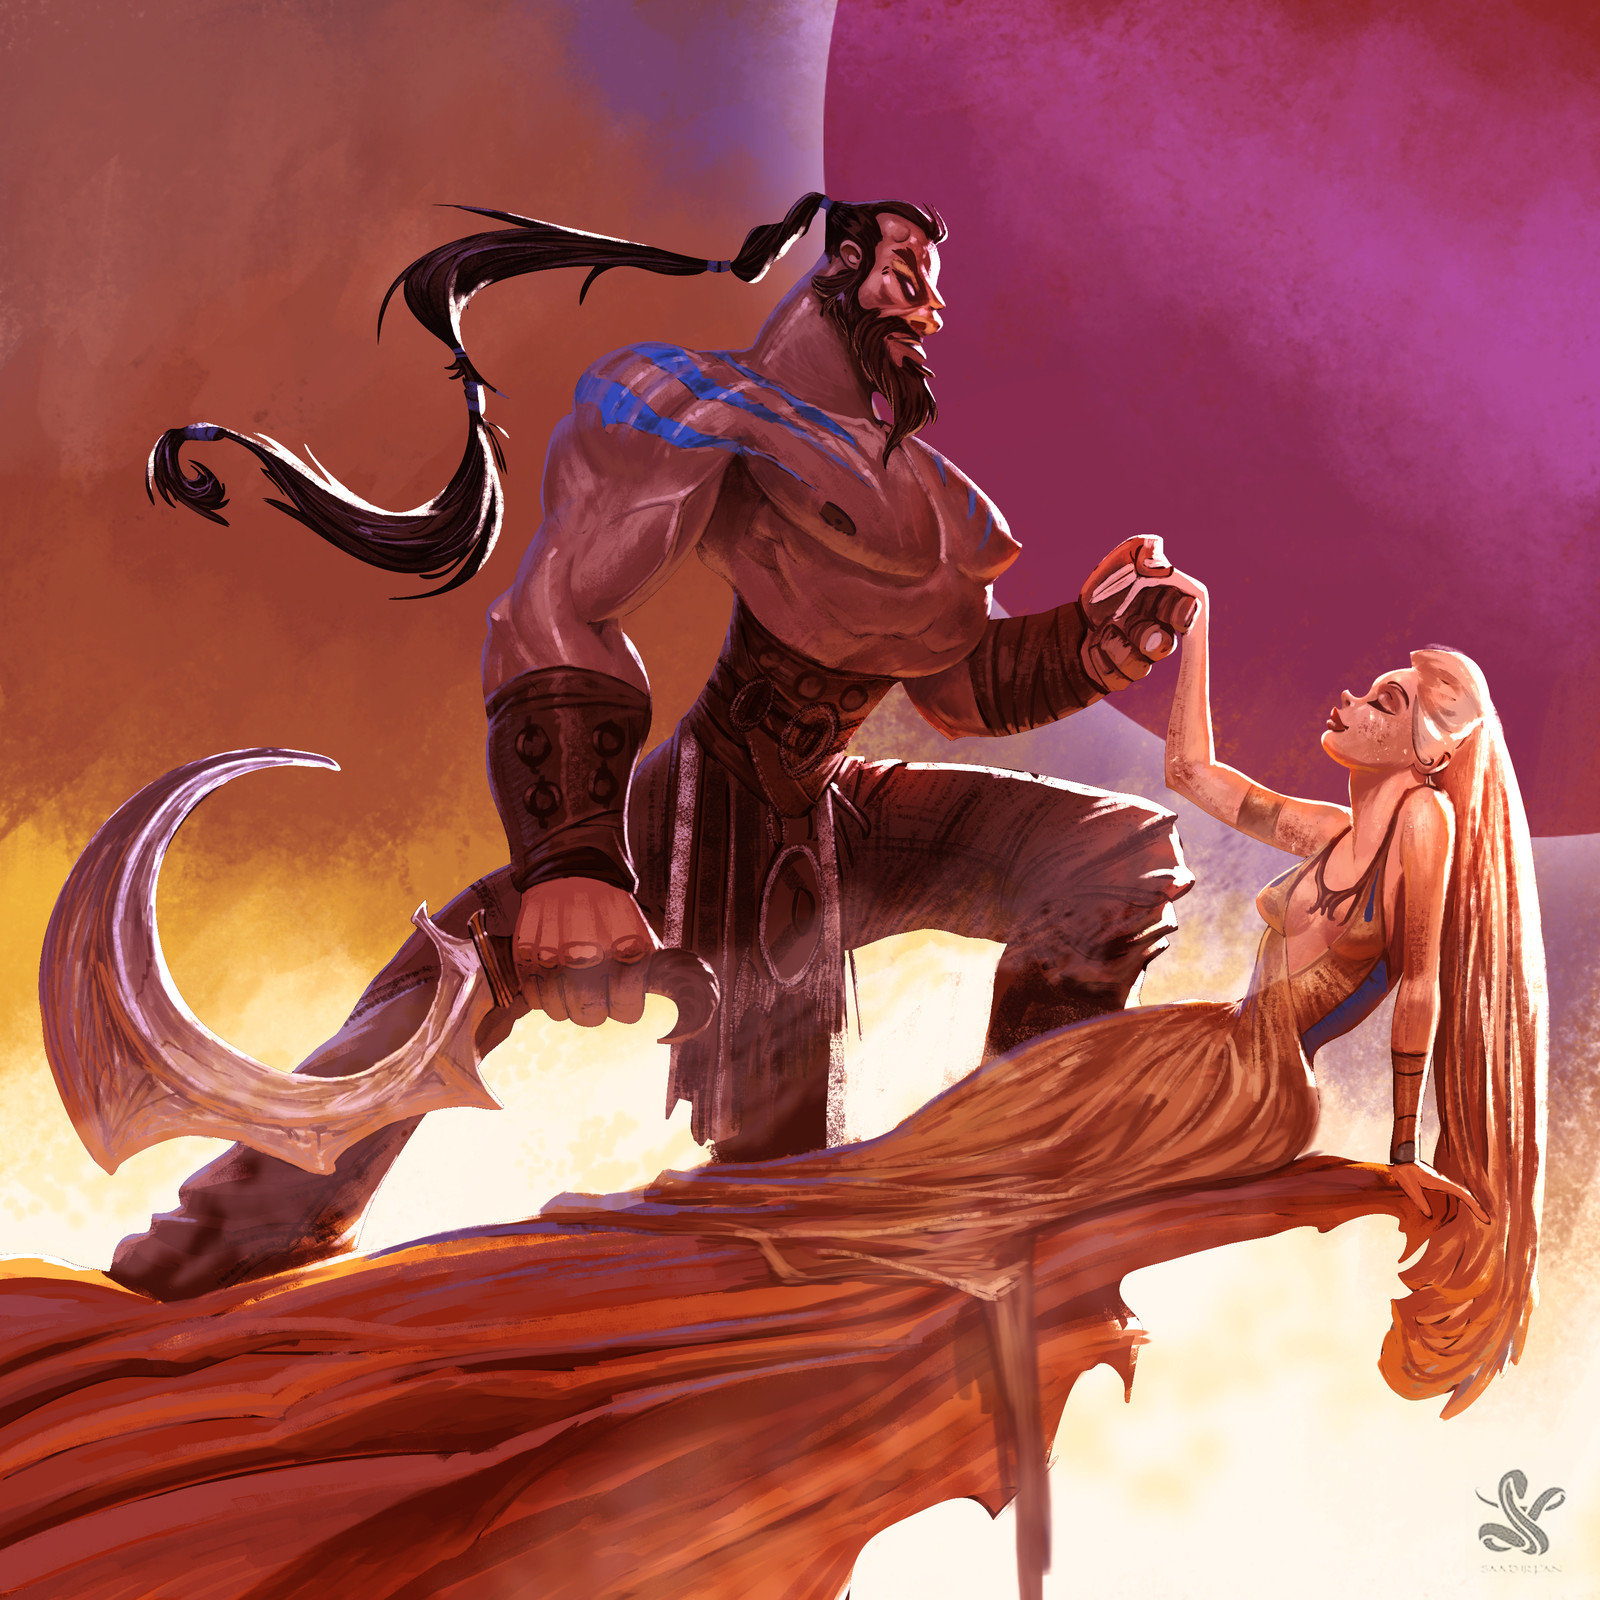 the drogo and the drogon queen